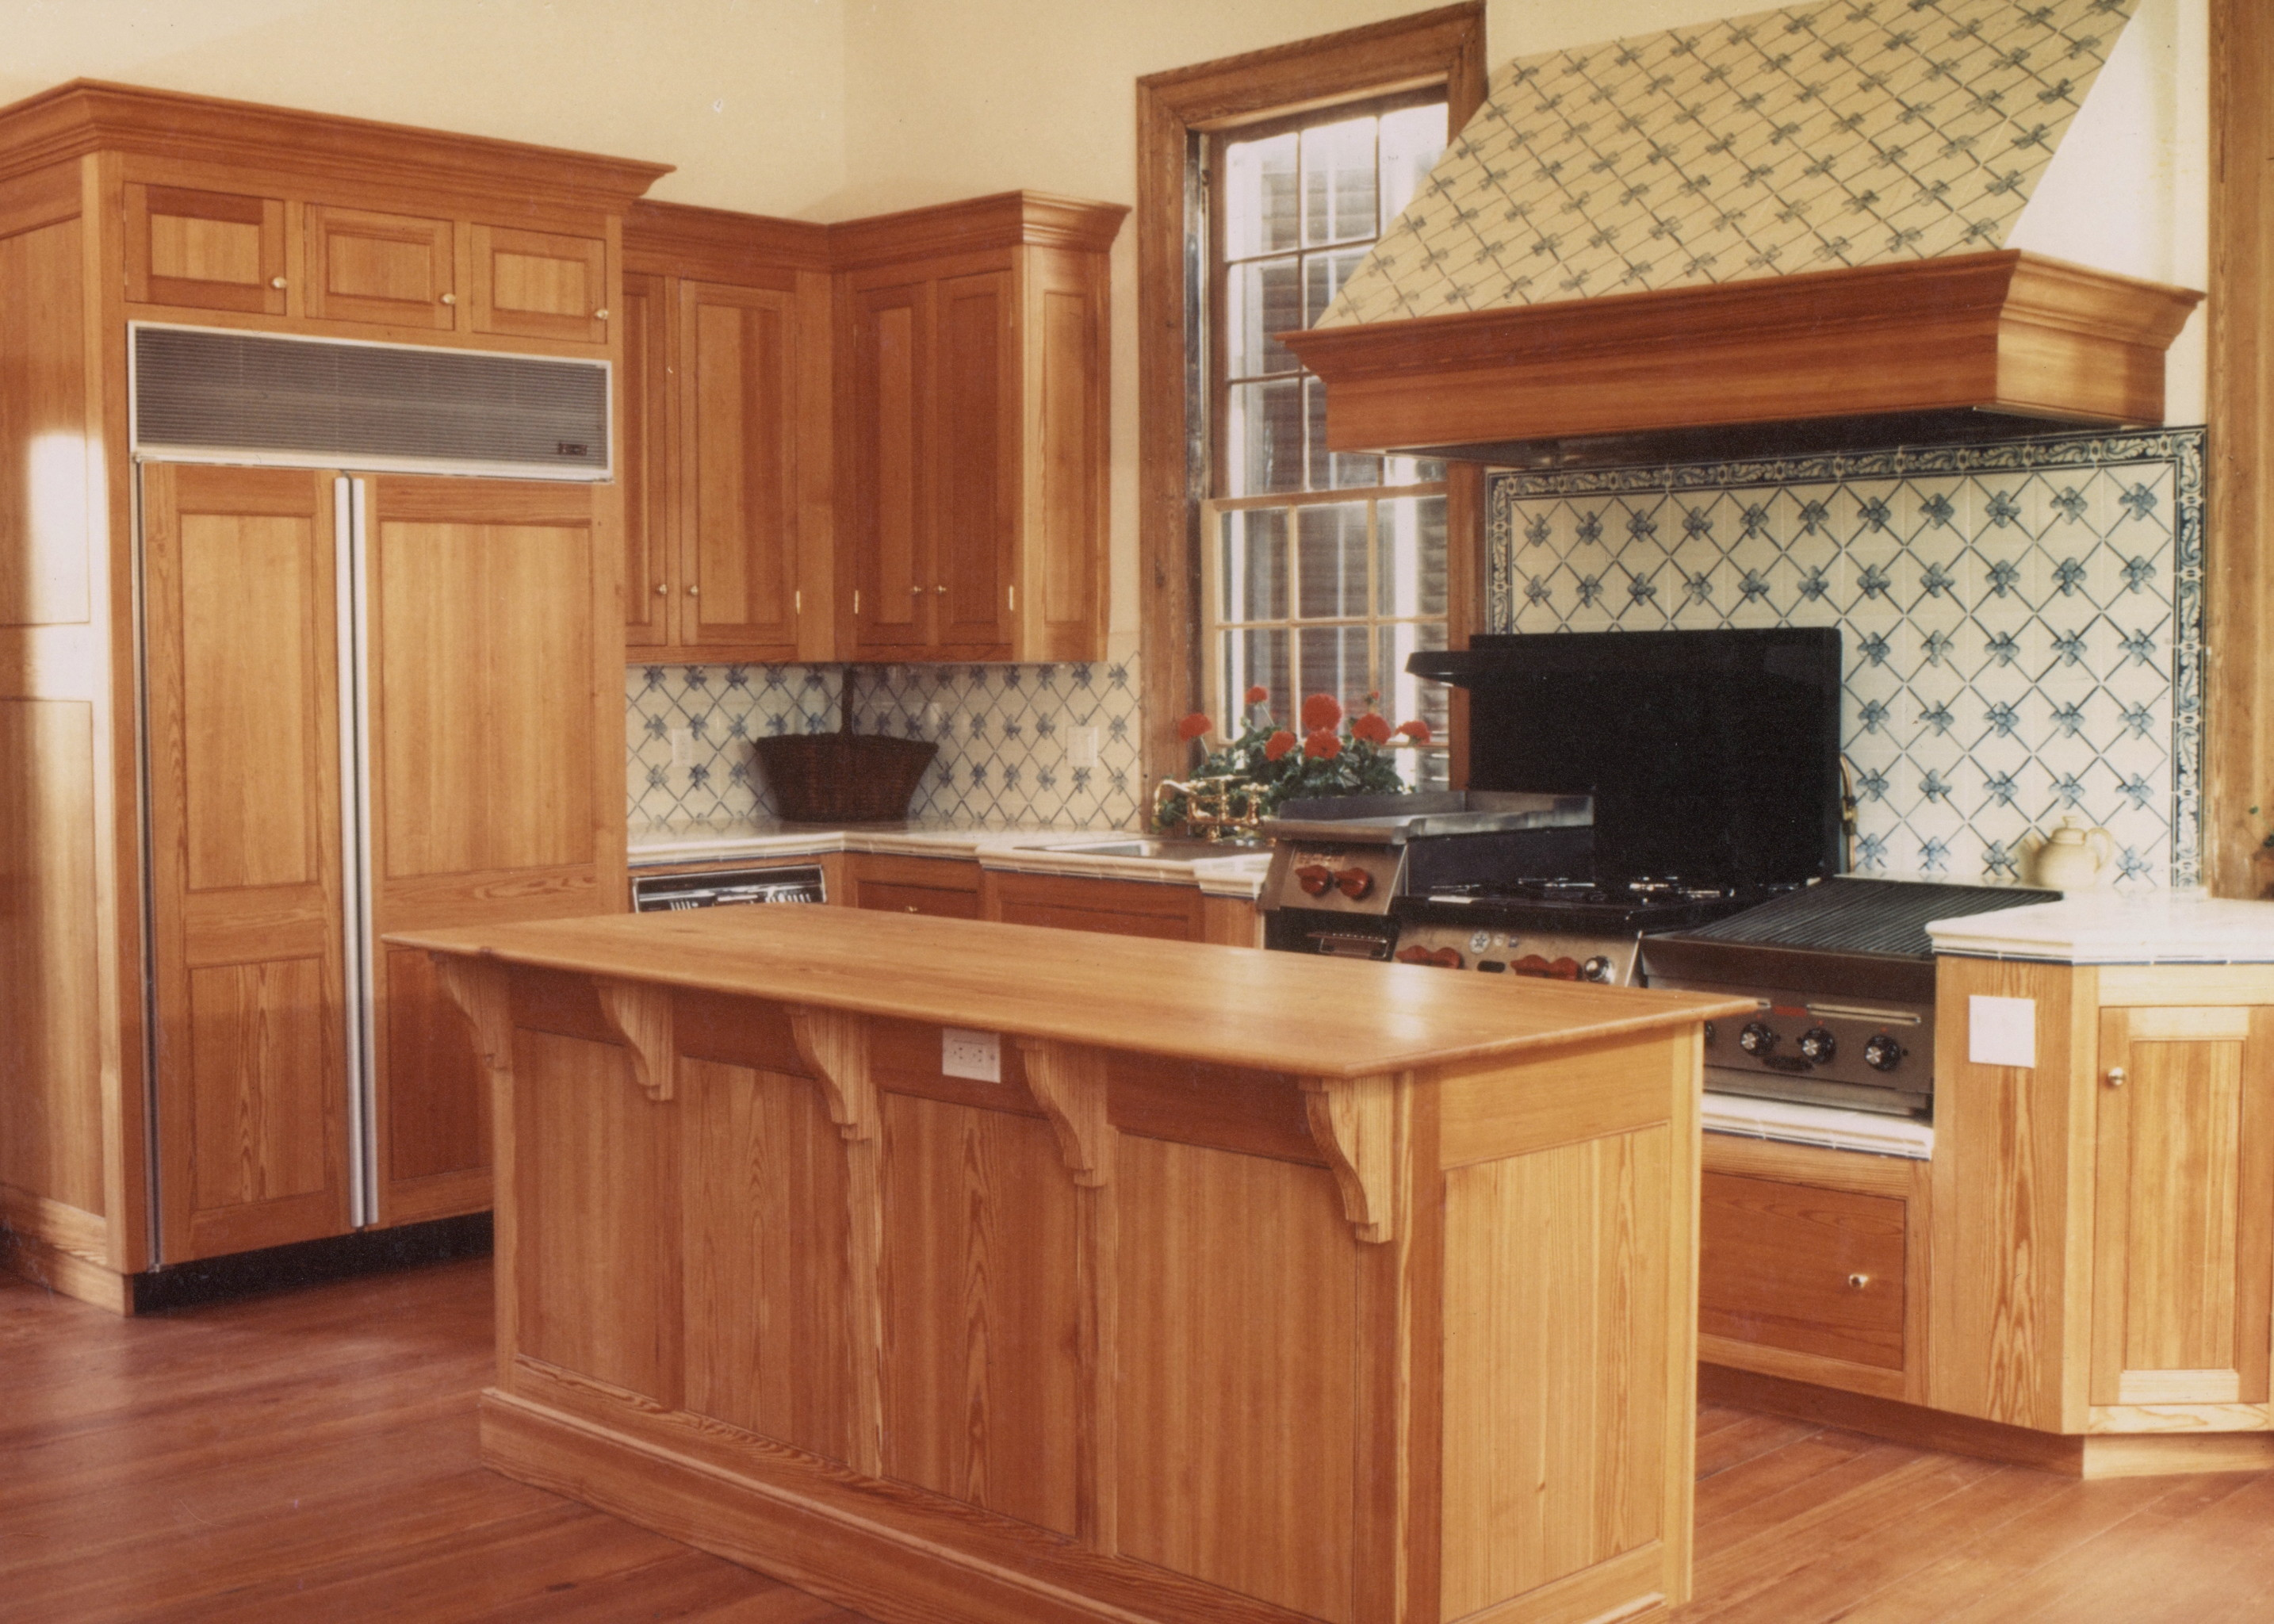 cabinetry, handcrafted with a focus on design and ambience, custom millwork and handcrafted interiors, stained hardwood